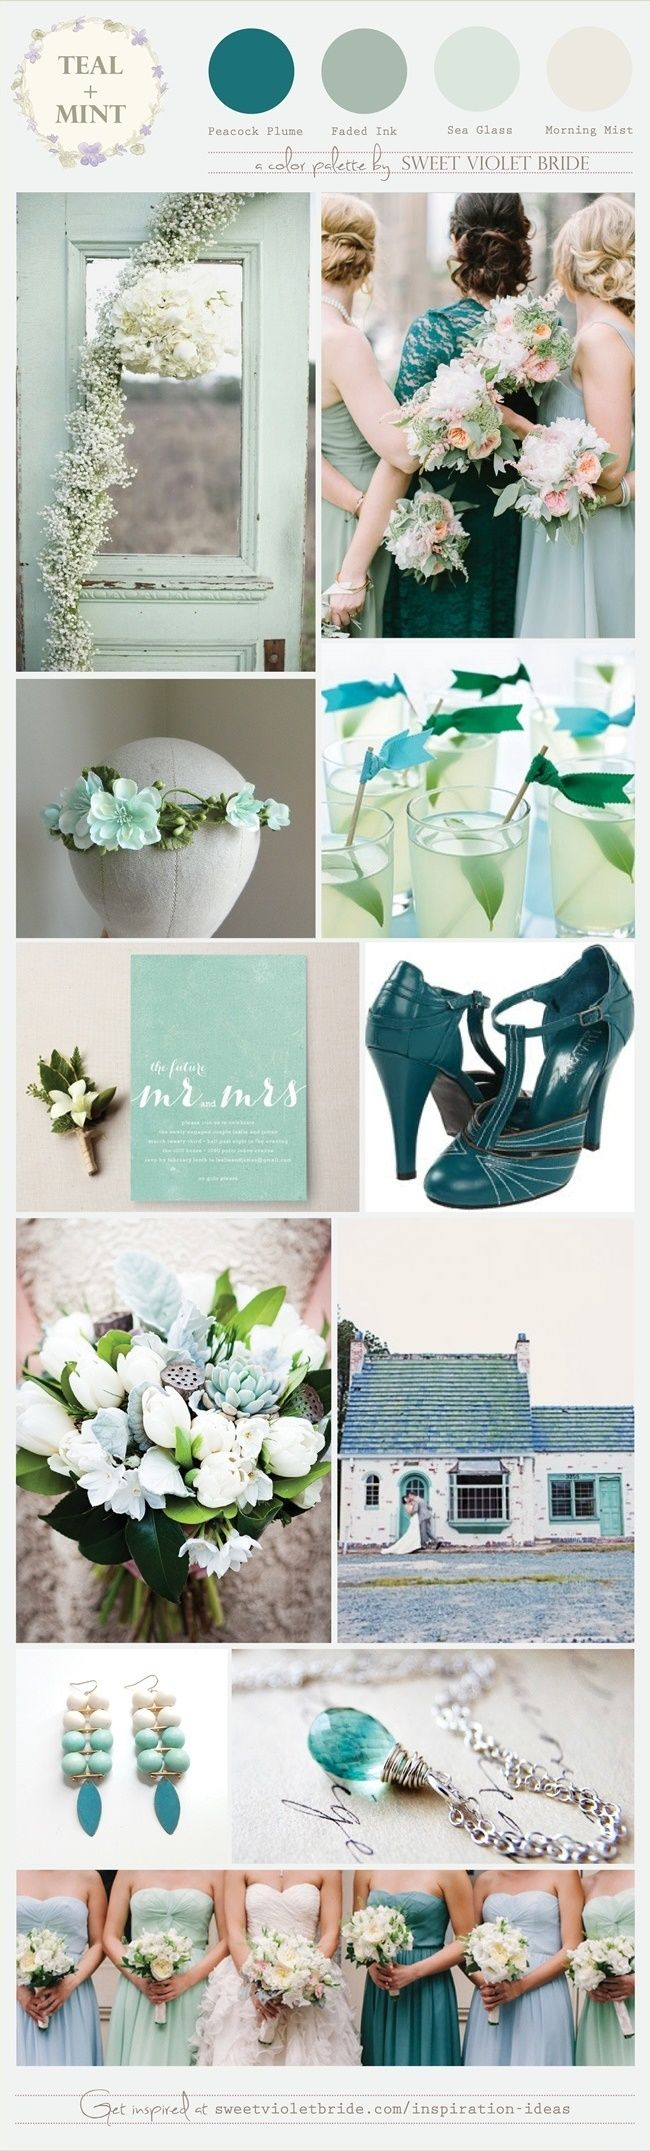 Wedding Color Palette: Teal + Mint (a color palette in tones of teal and mint). Two of my favorites on the cool end of the color spectrum, and they pair beautifully simply with each other or with accents of cream, blush, or lavender. This color palette looks lovely with bridesmaid dresses in watercolor shades of sea glass mint, peacock teal, and misty grey-green (think dusty miller).